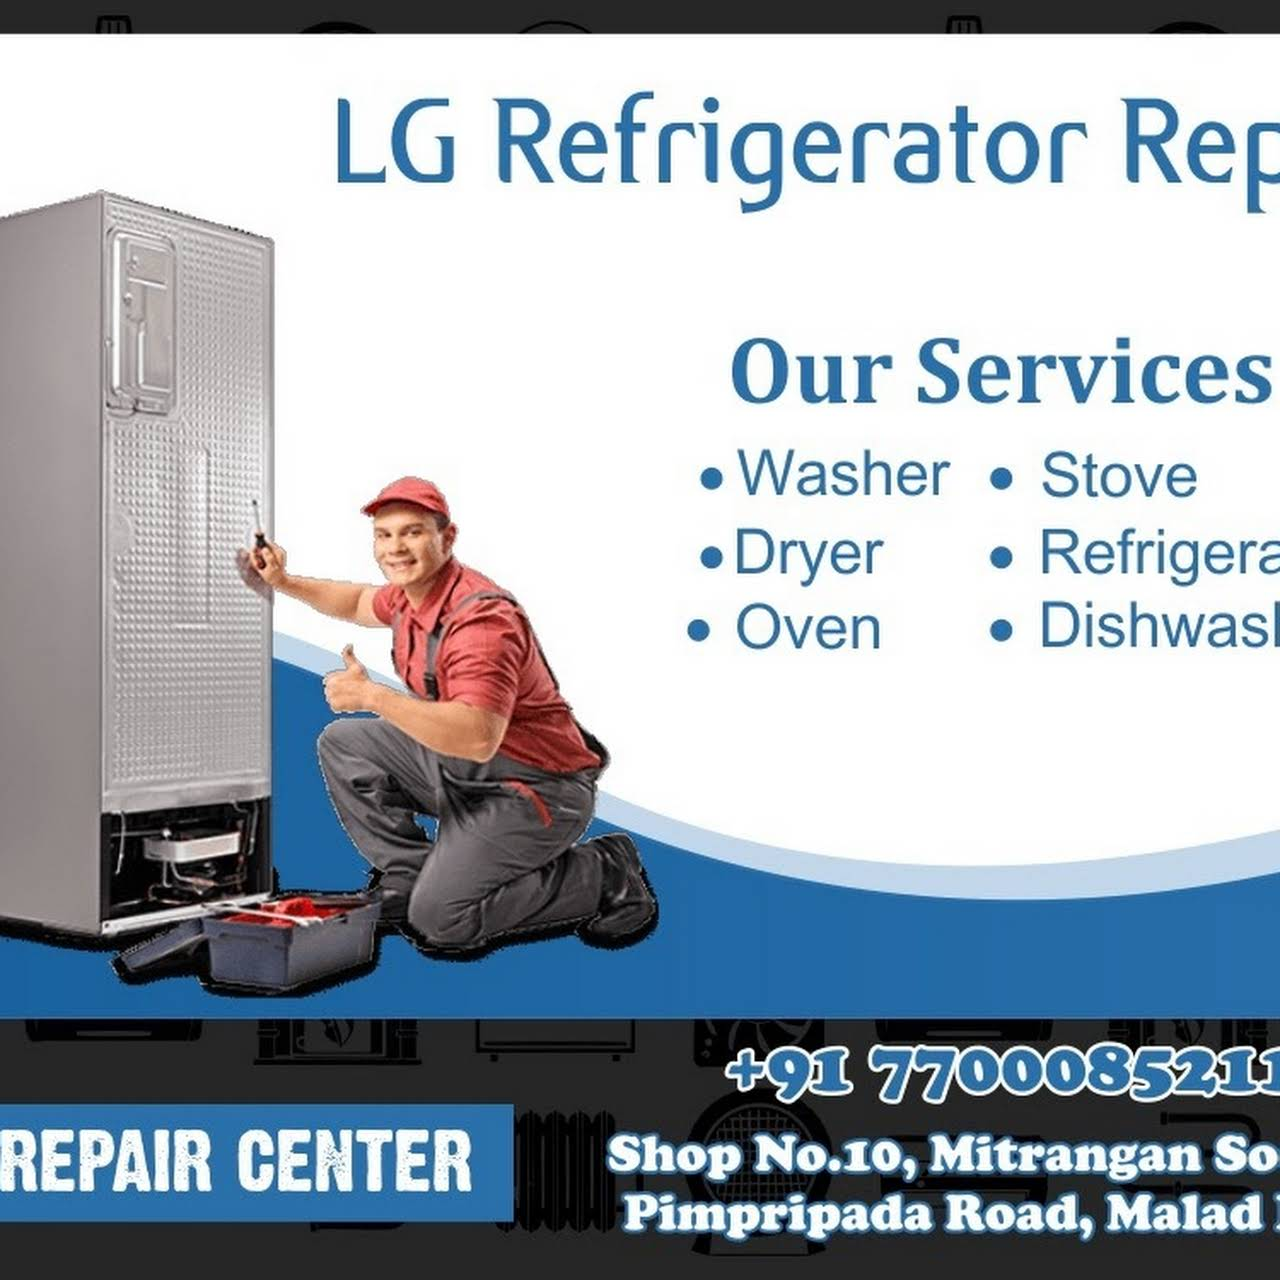 Zee Repair Service Lg Service Center In Malad Goregaon Refrigerator Repair Service In Goregaon